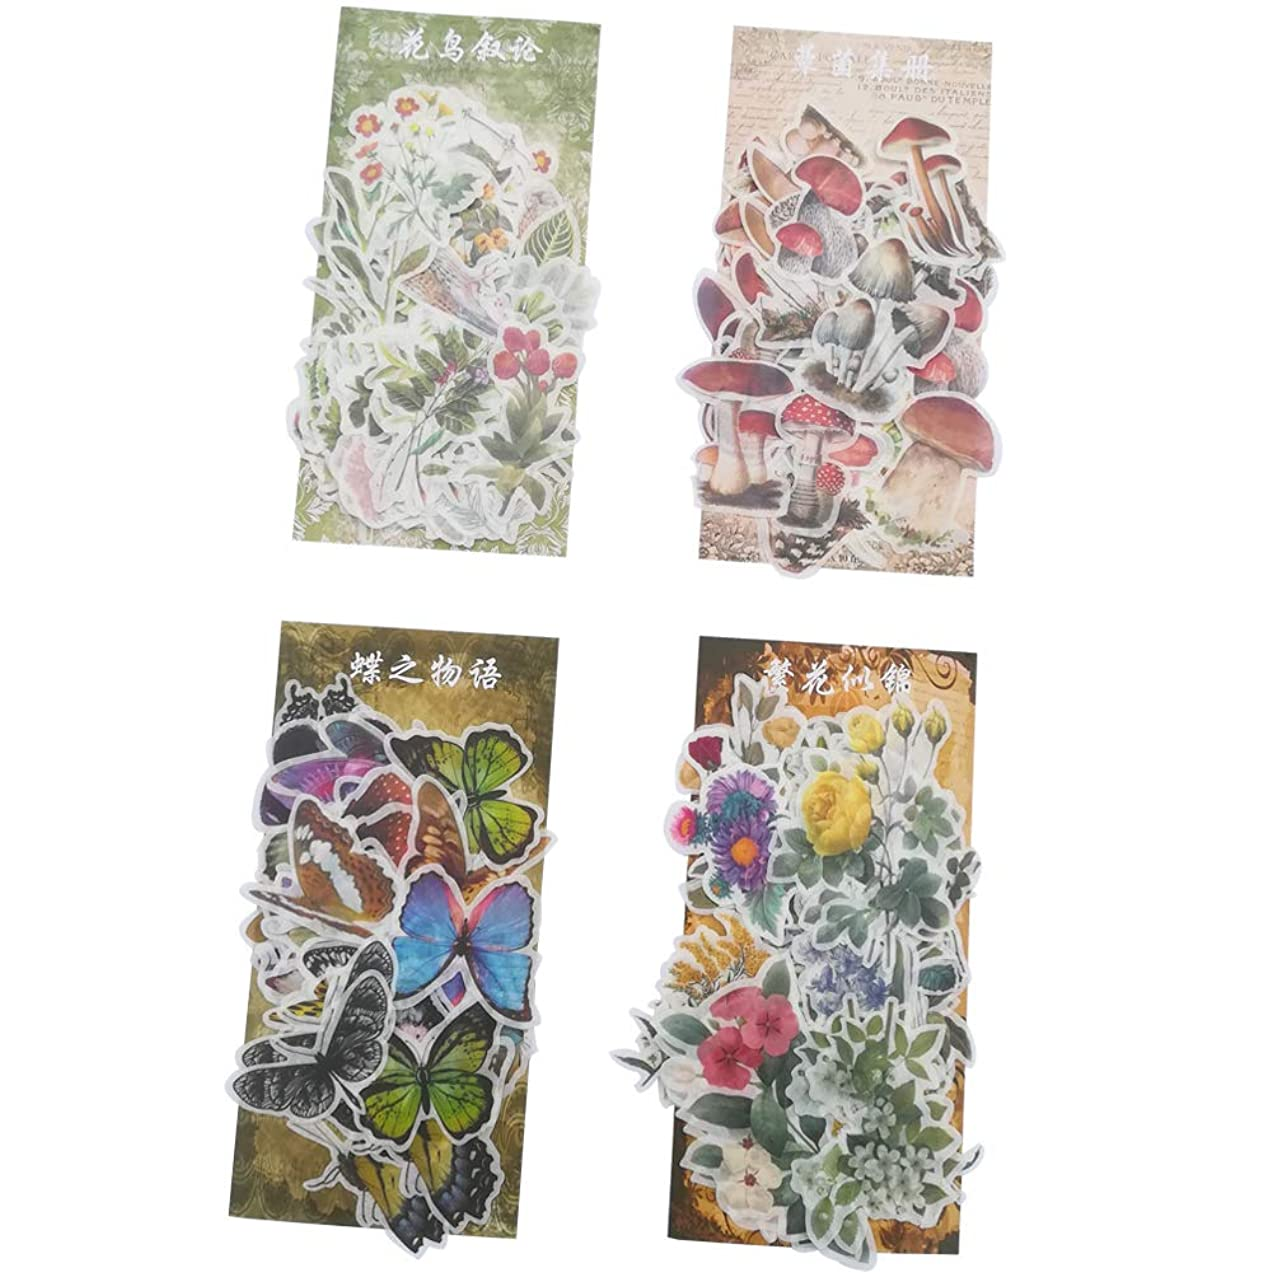 Vintage Adhesive Decoration Sticker Set (240 Pieces) Floral Daffodil Rose Lily Daisy Flower Plant Bird Colorful Butterfly Mushroom Stickers DIY Label for Journaling Scrapbooking Album Planner Diary